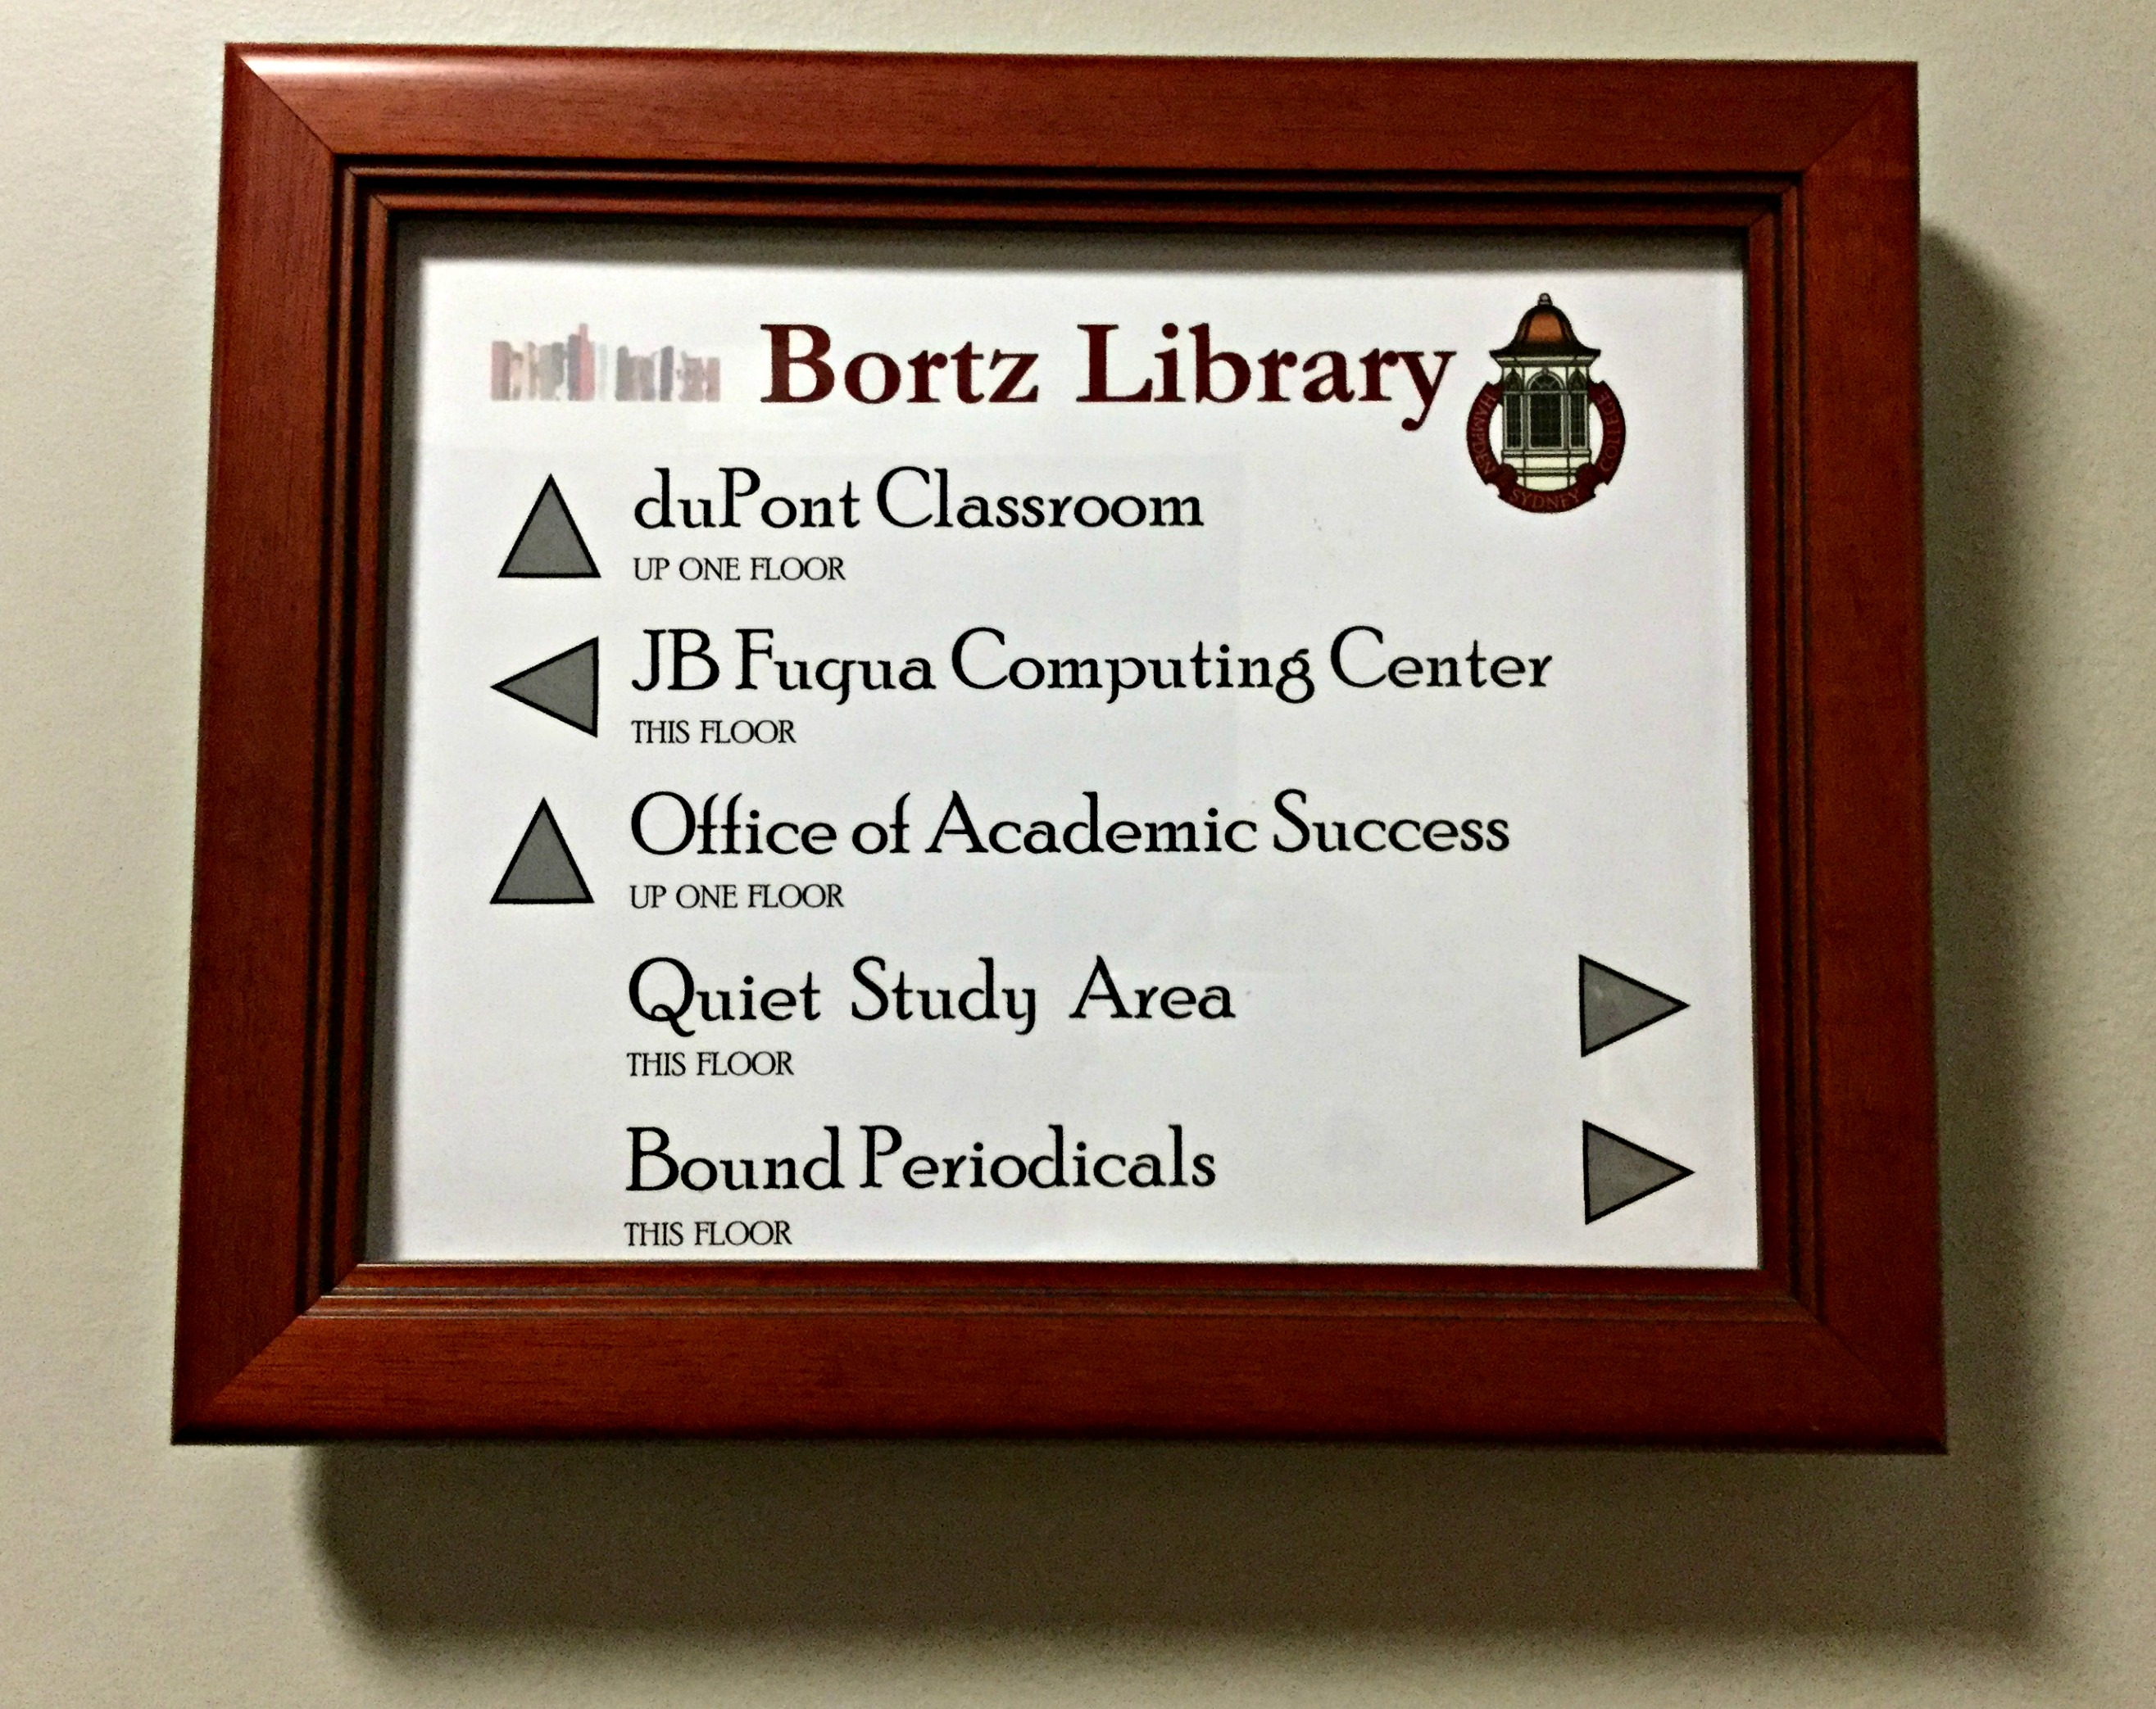 Library signage throughout the building helps with directions